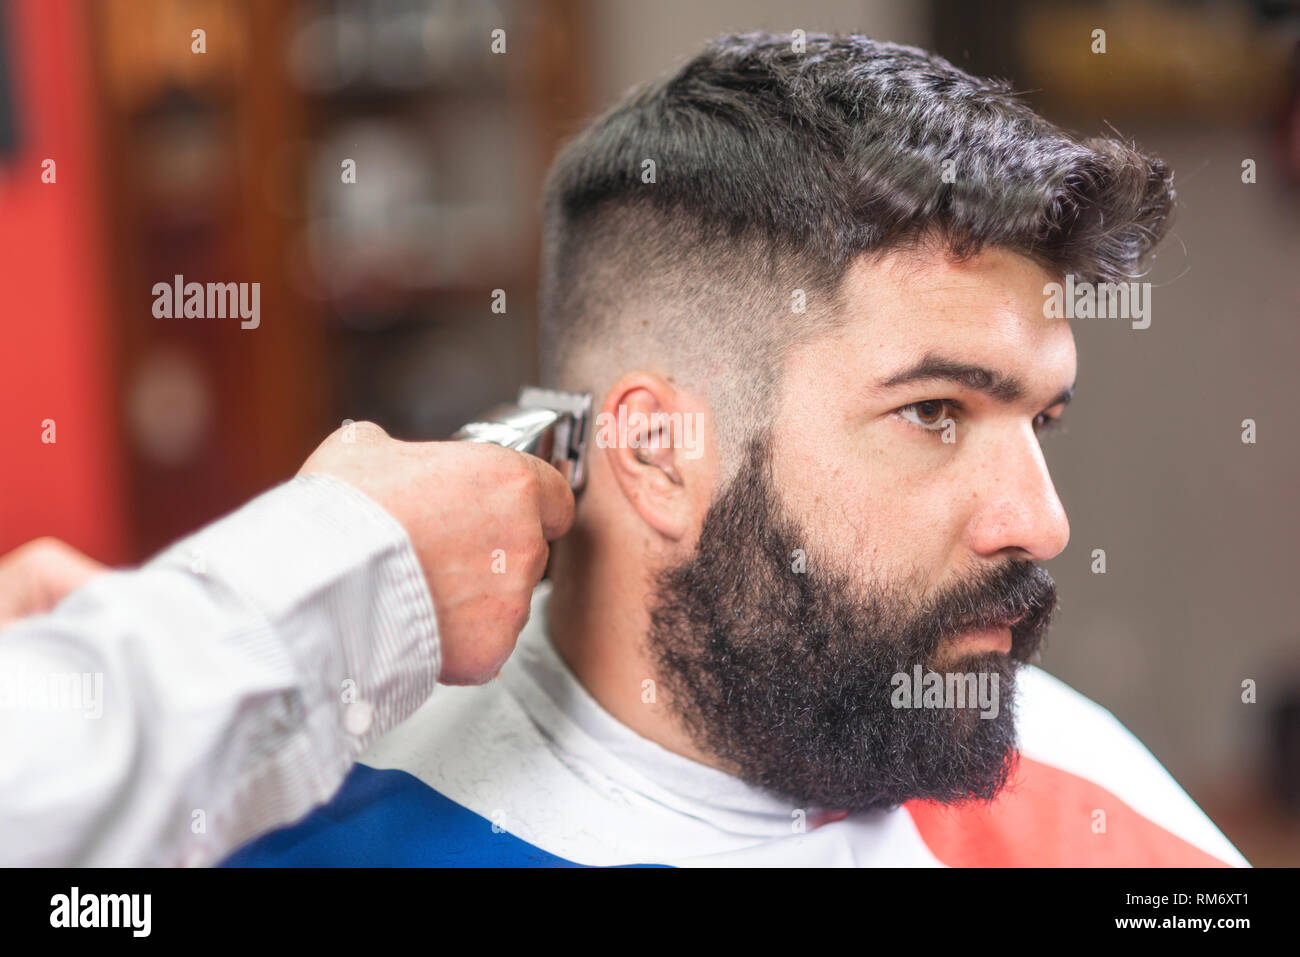 Handsome bearded man, getting haircut by barber, with electric trimmer at barbershop . - Stock Image